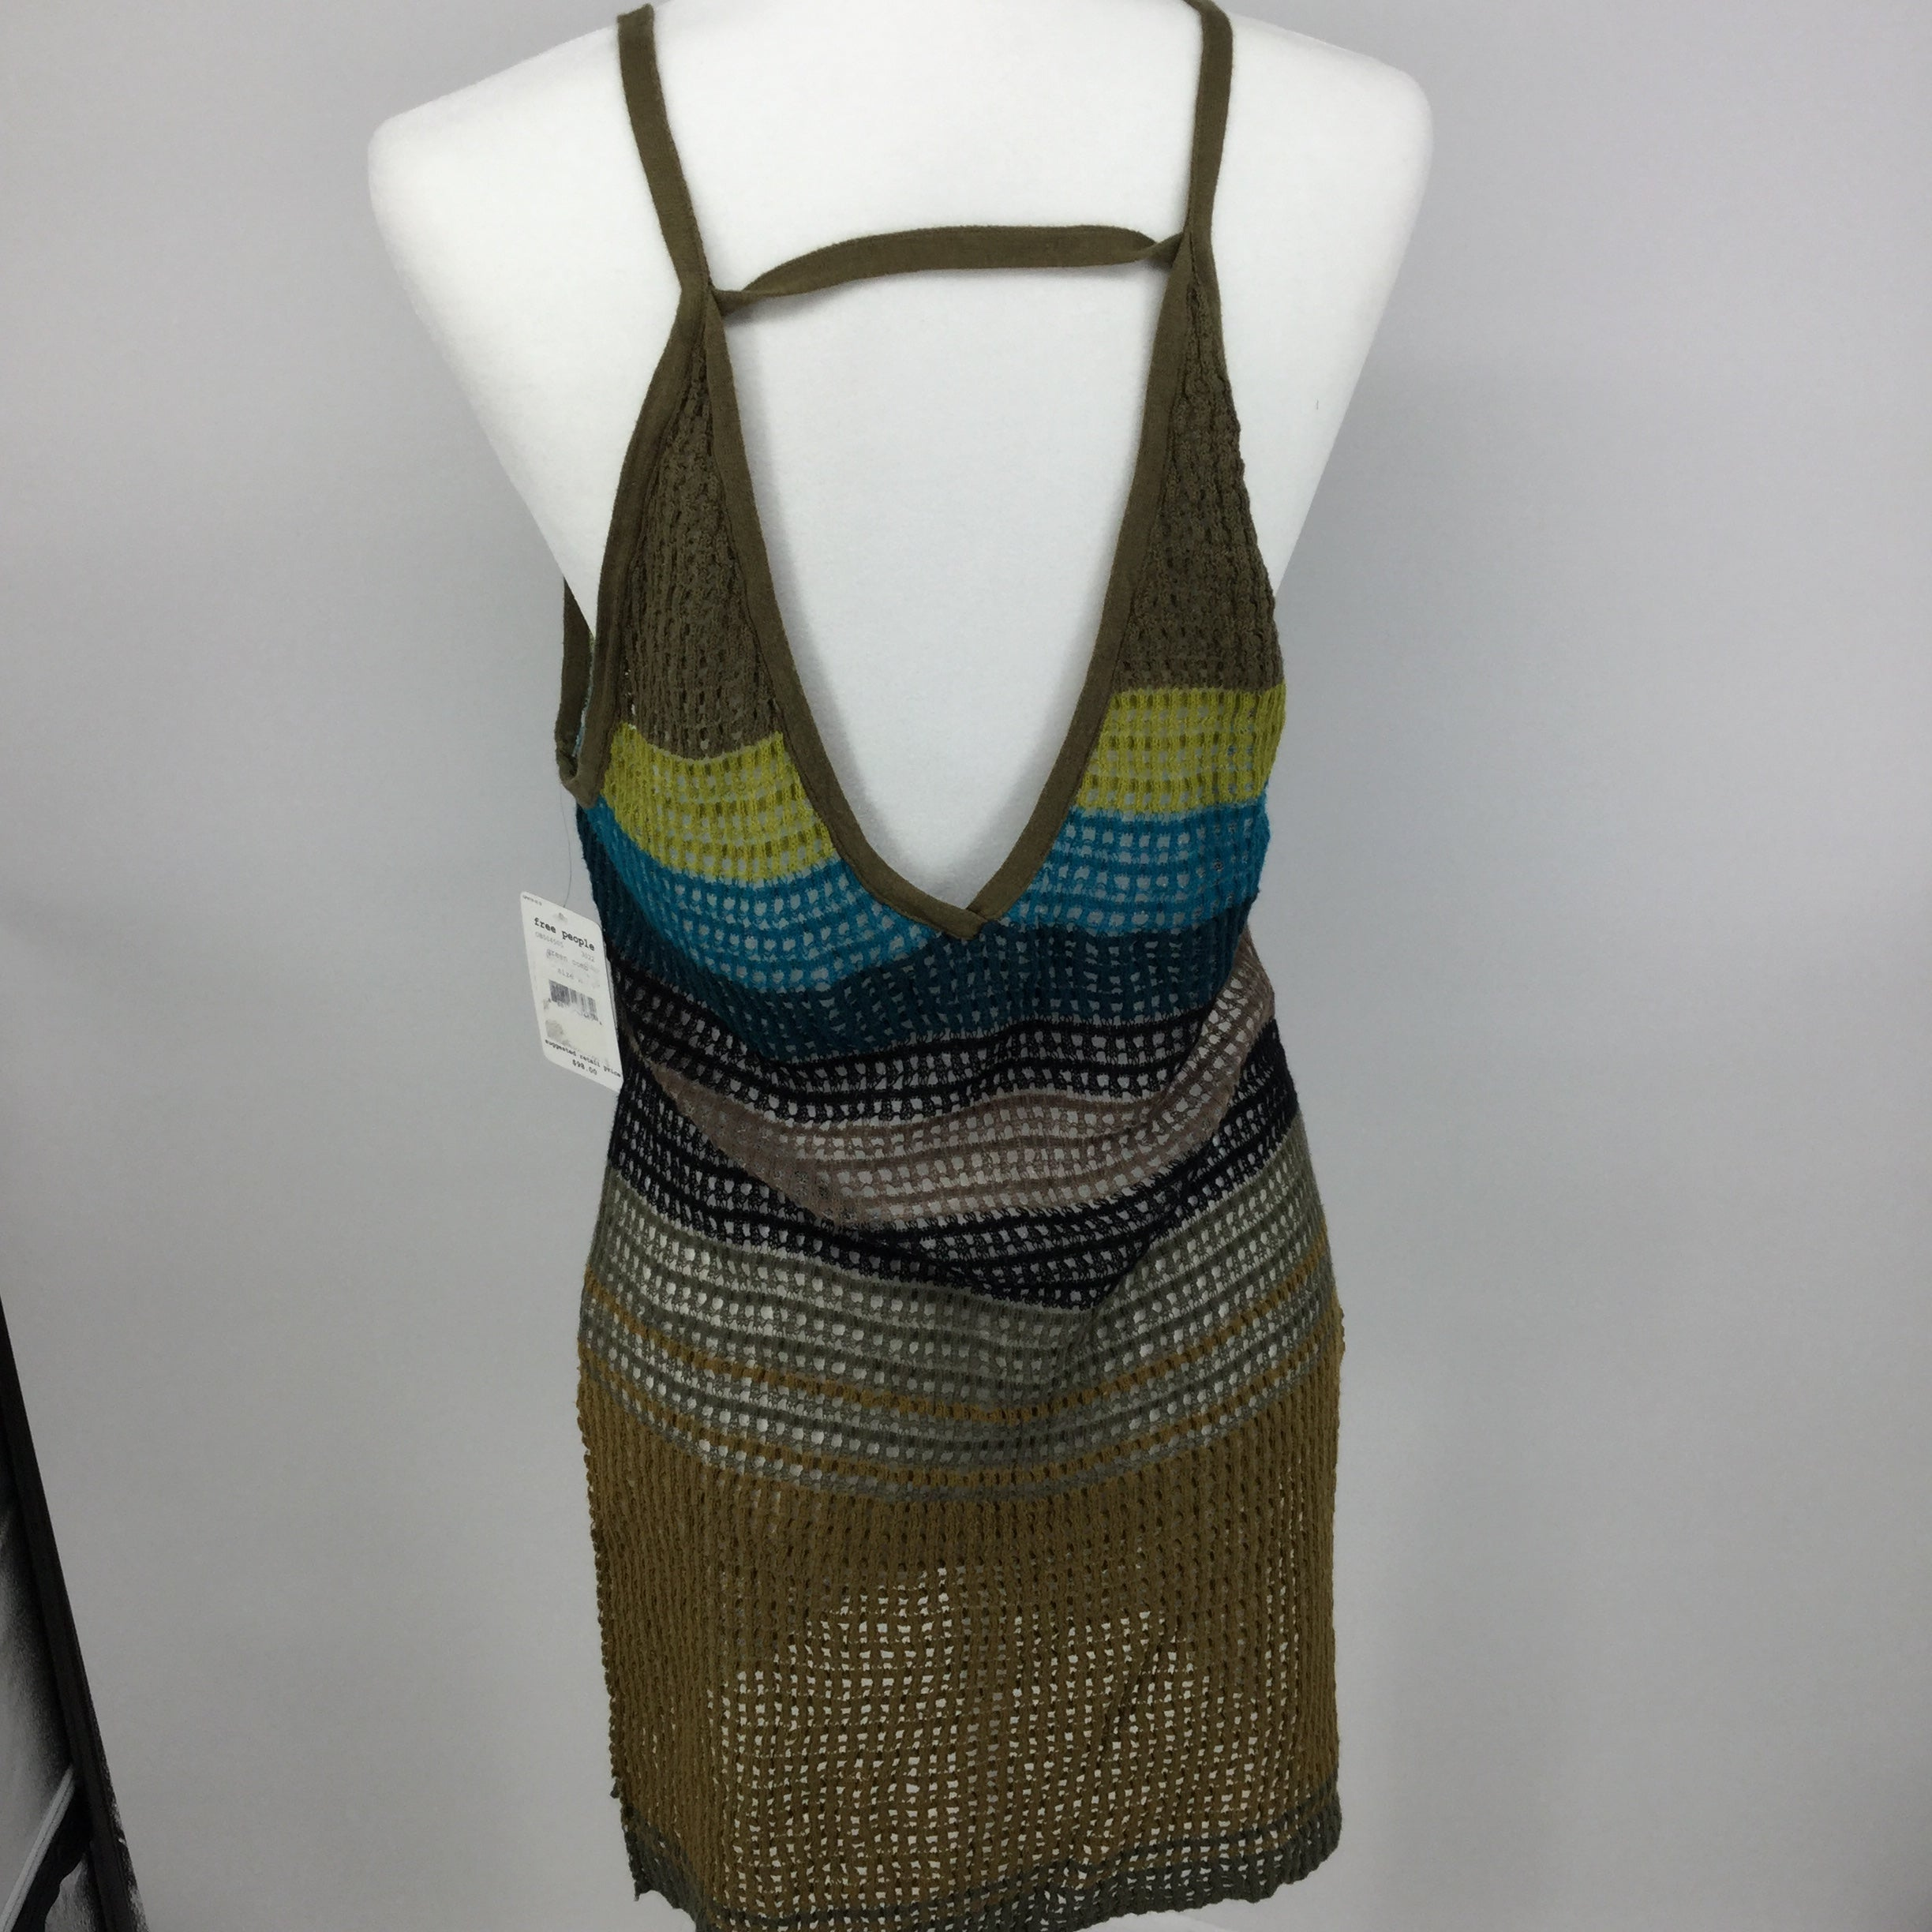 APPAREL,TOPS - IF YOU GOT TICKETS TO COACHELLA (LUCKY!) THEN YOU'LL NEED TO GET YOUR OUTFIT TOGETHER RIGHT NOW - THIS LOOSE KNIT FREE PEOPLE TOP HAS YOUR NAME ON IT.